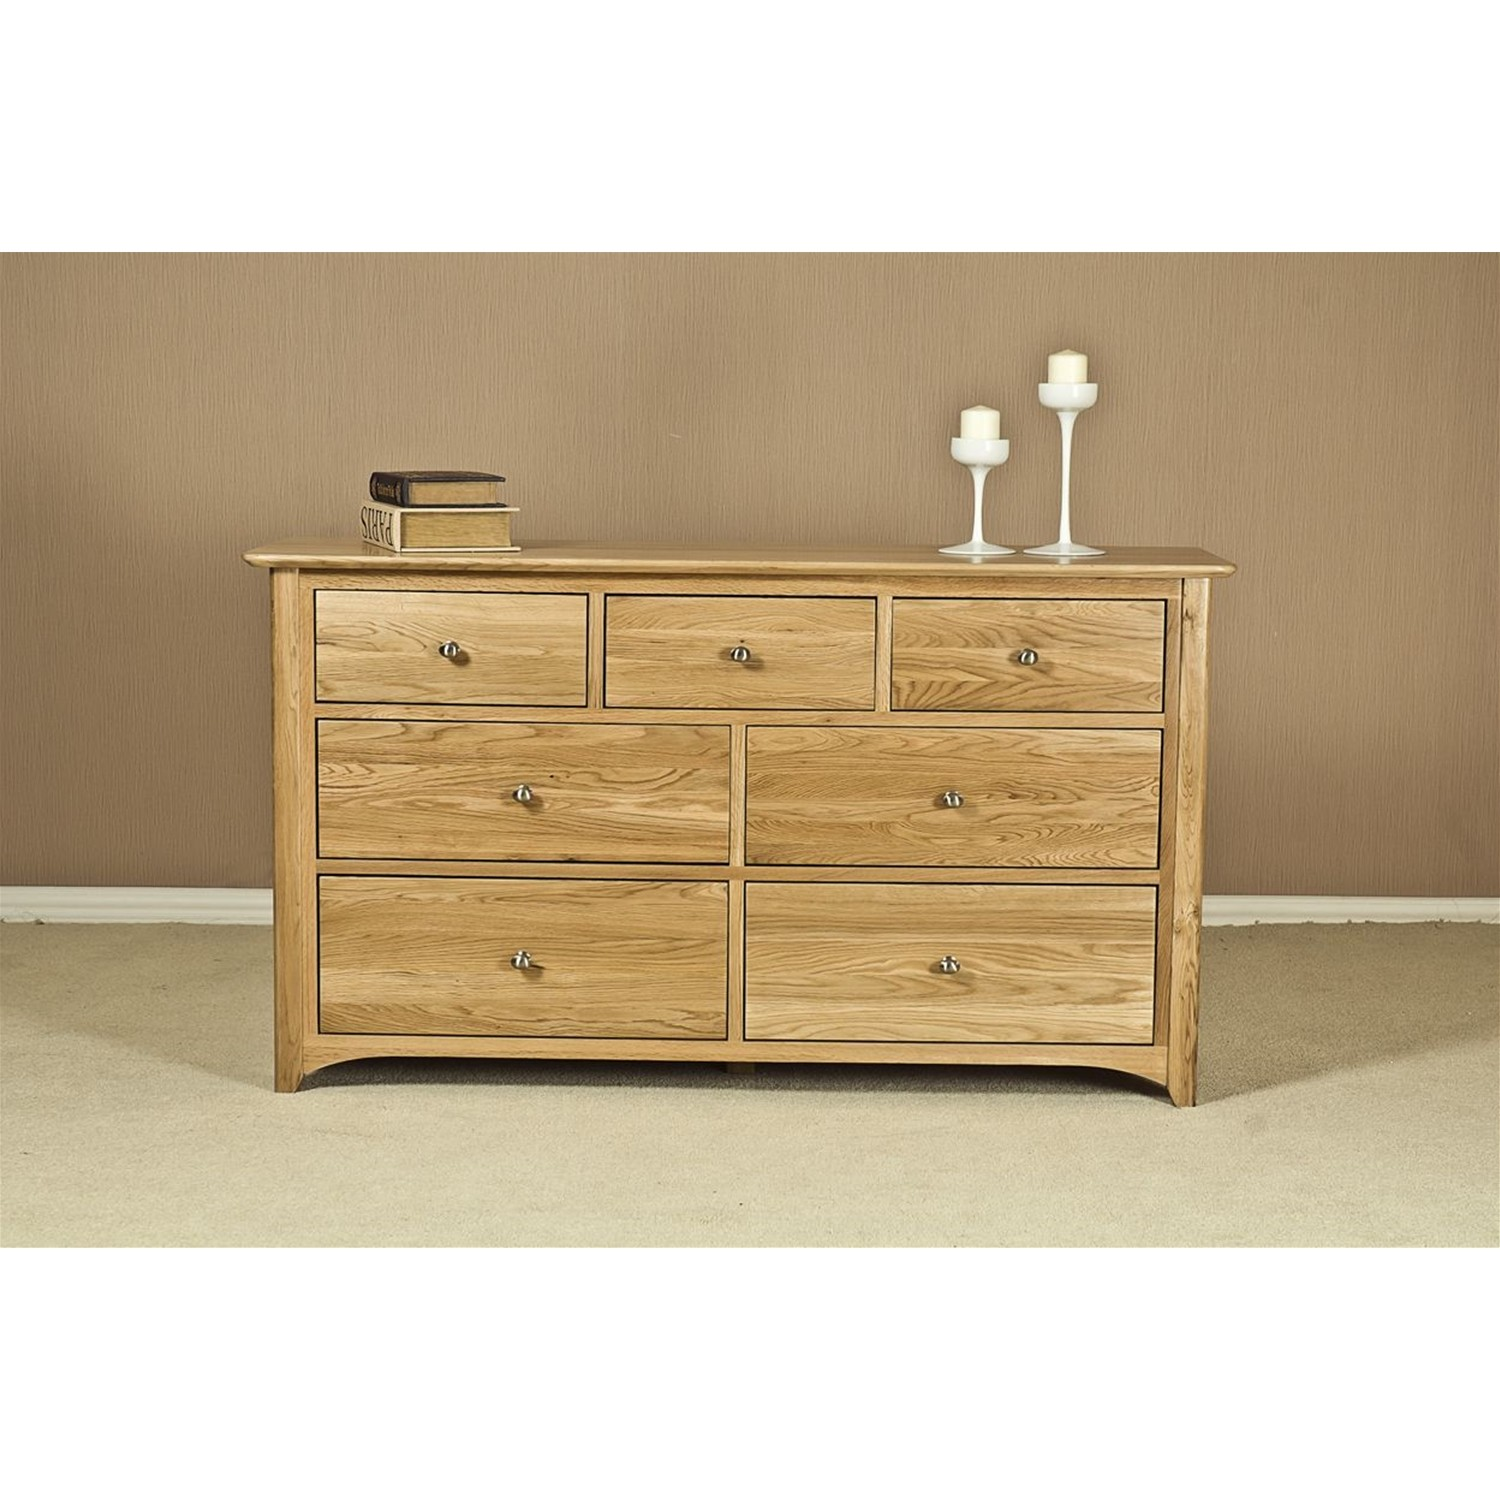 Leekes Bedroom Furniture Chest Of Drawers Buy Online Or Click And Collect Leekes